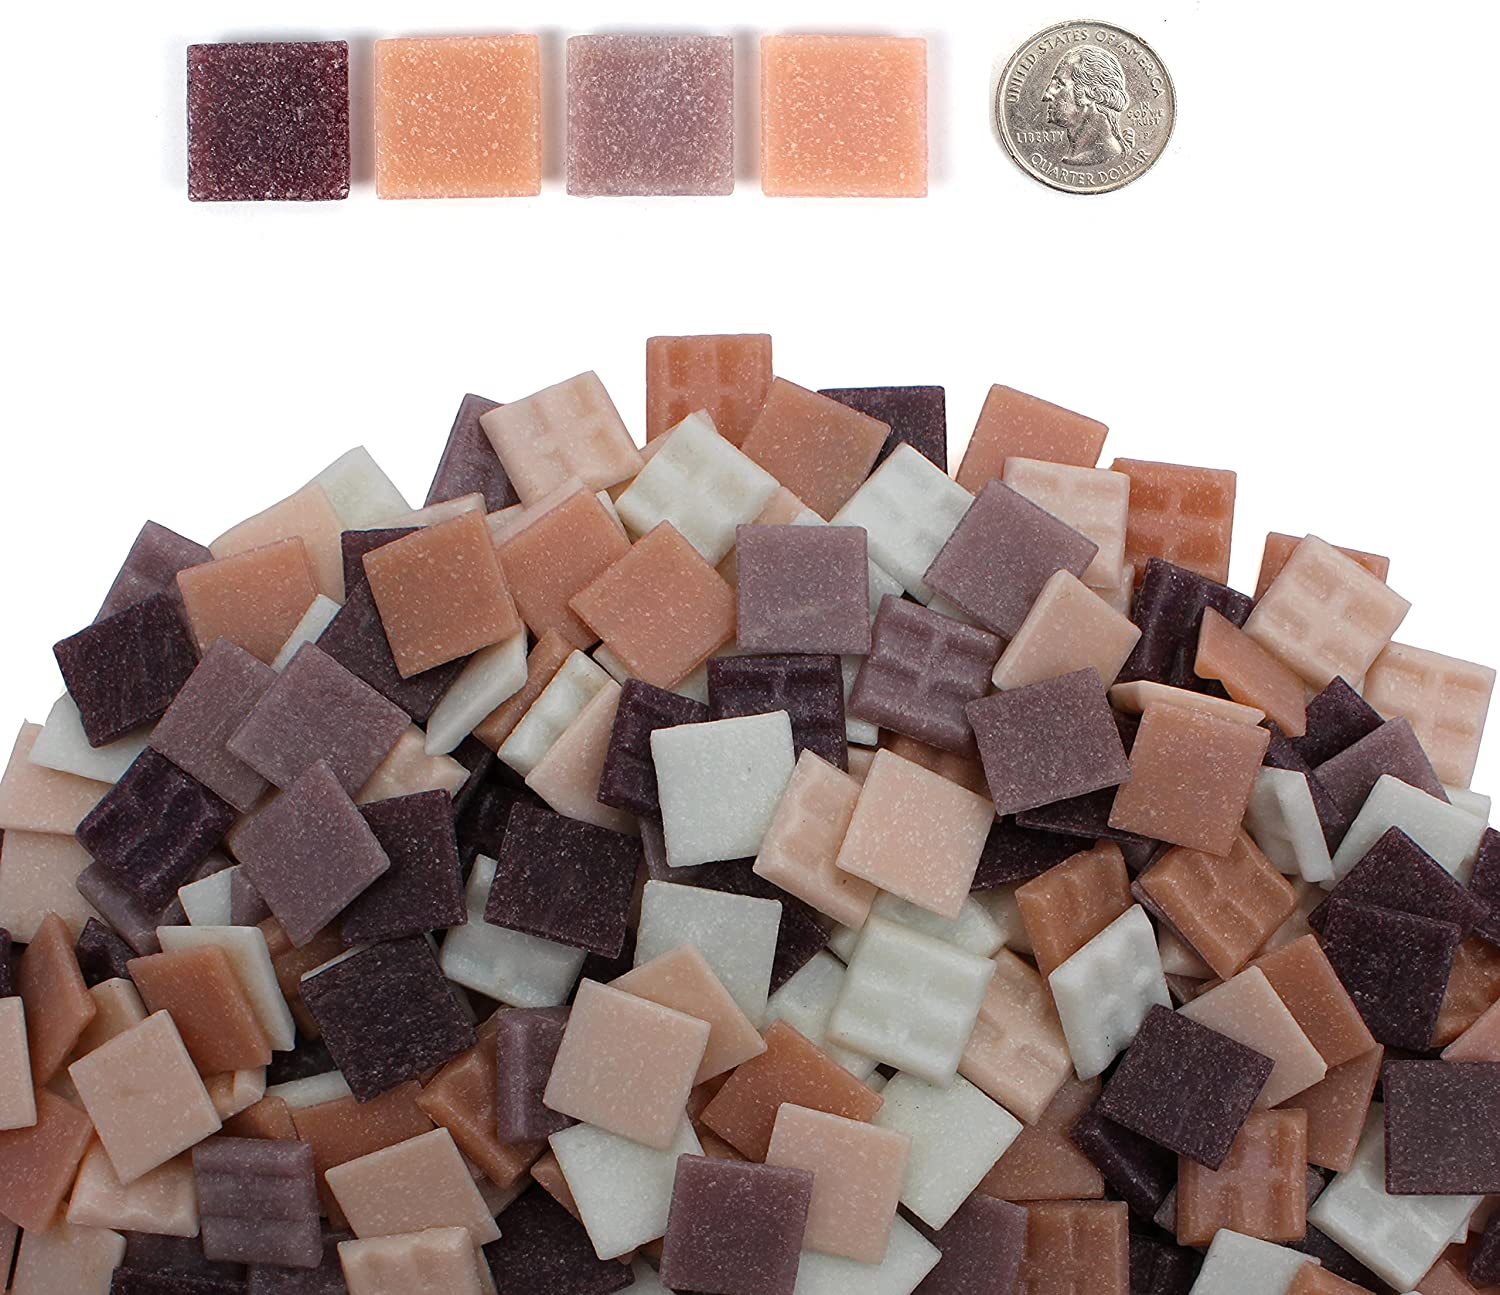 1 Pound Mixed Colors Venetian Glass Tile 3//4 Inch Craft and Backsplash Tile 20mm Milltown Merchants Black and Tan Mosaic Tiles 16 oz Bulk Mosaic Tile Assortment